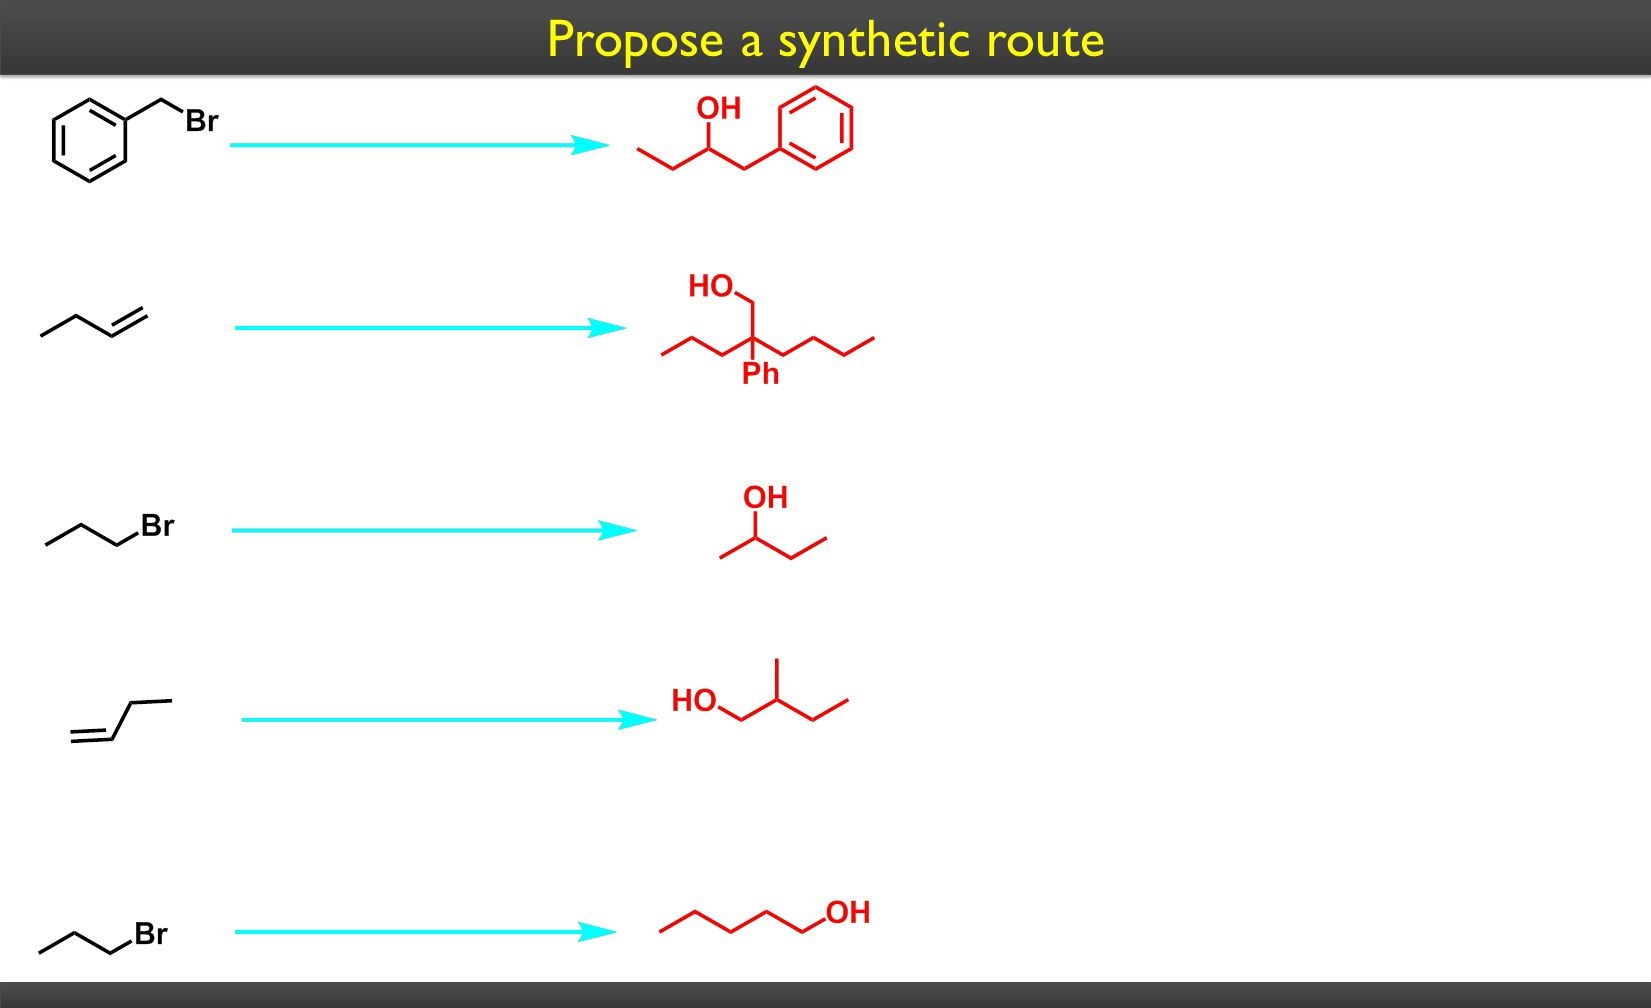 Propose a synthetic route